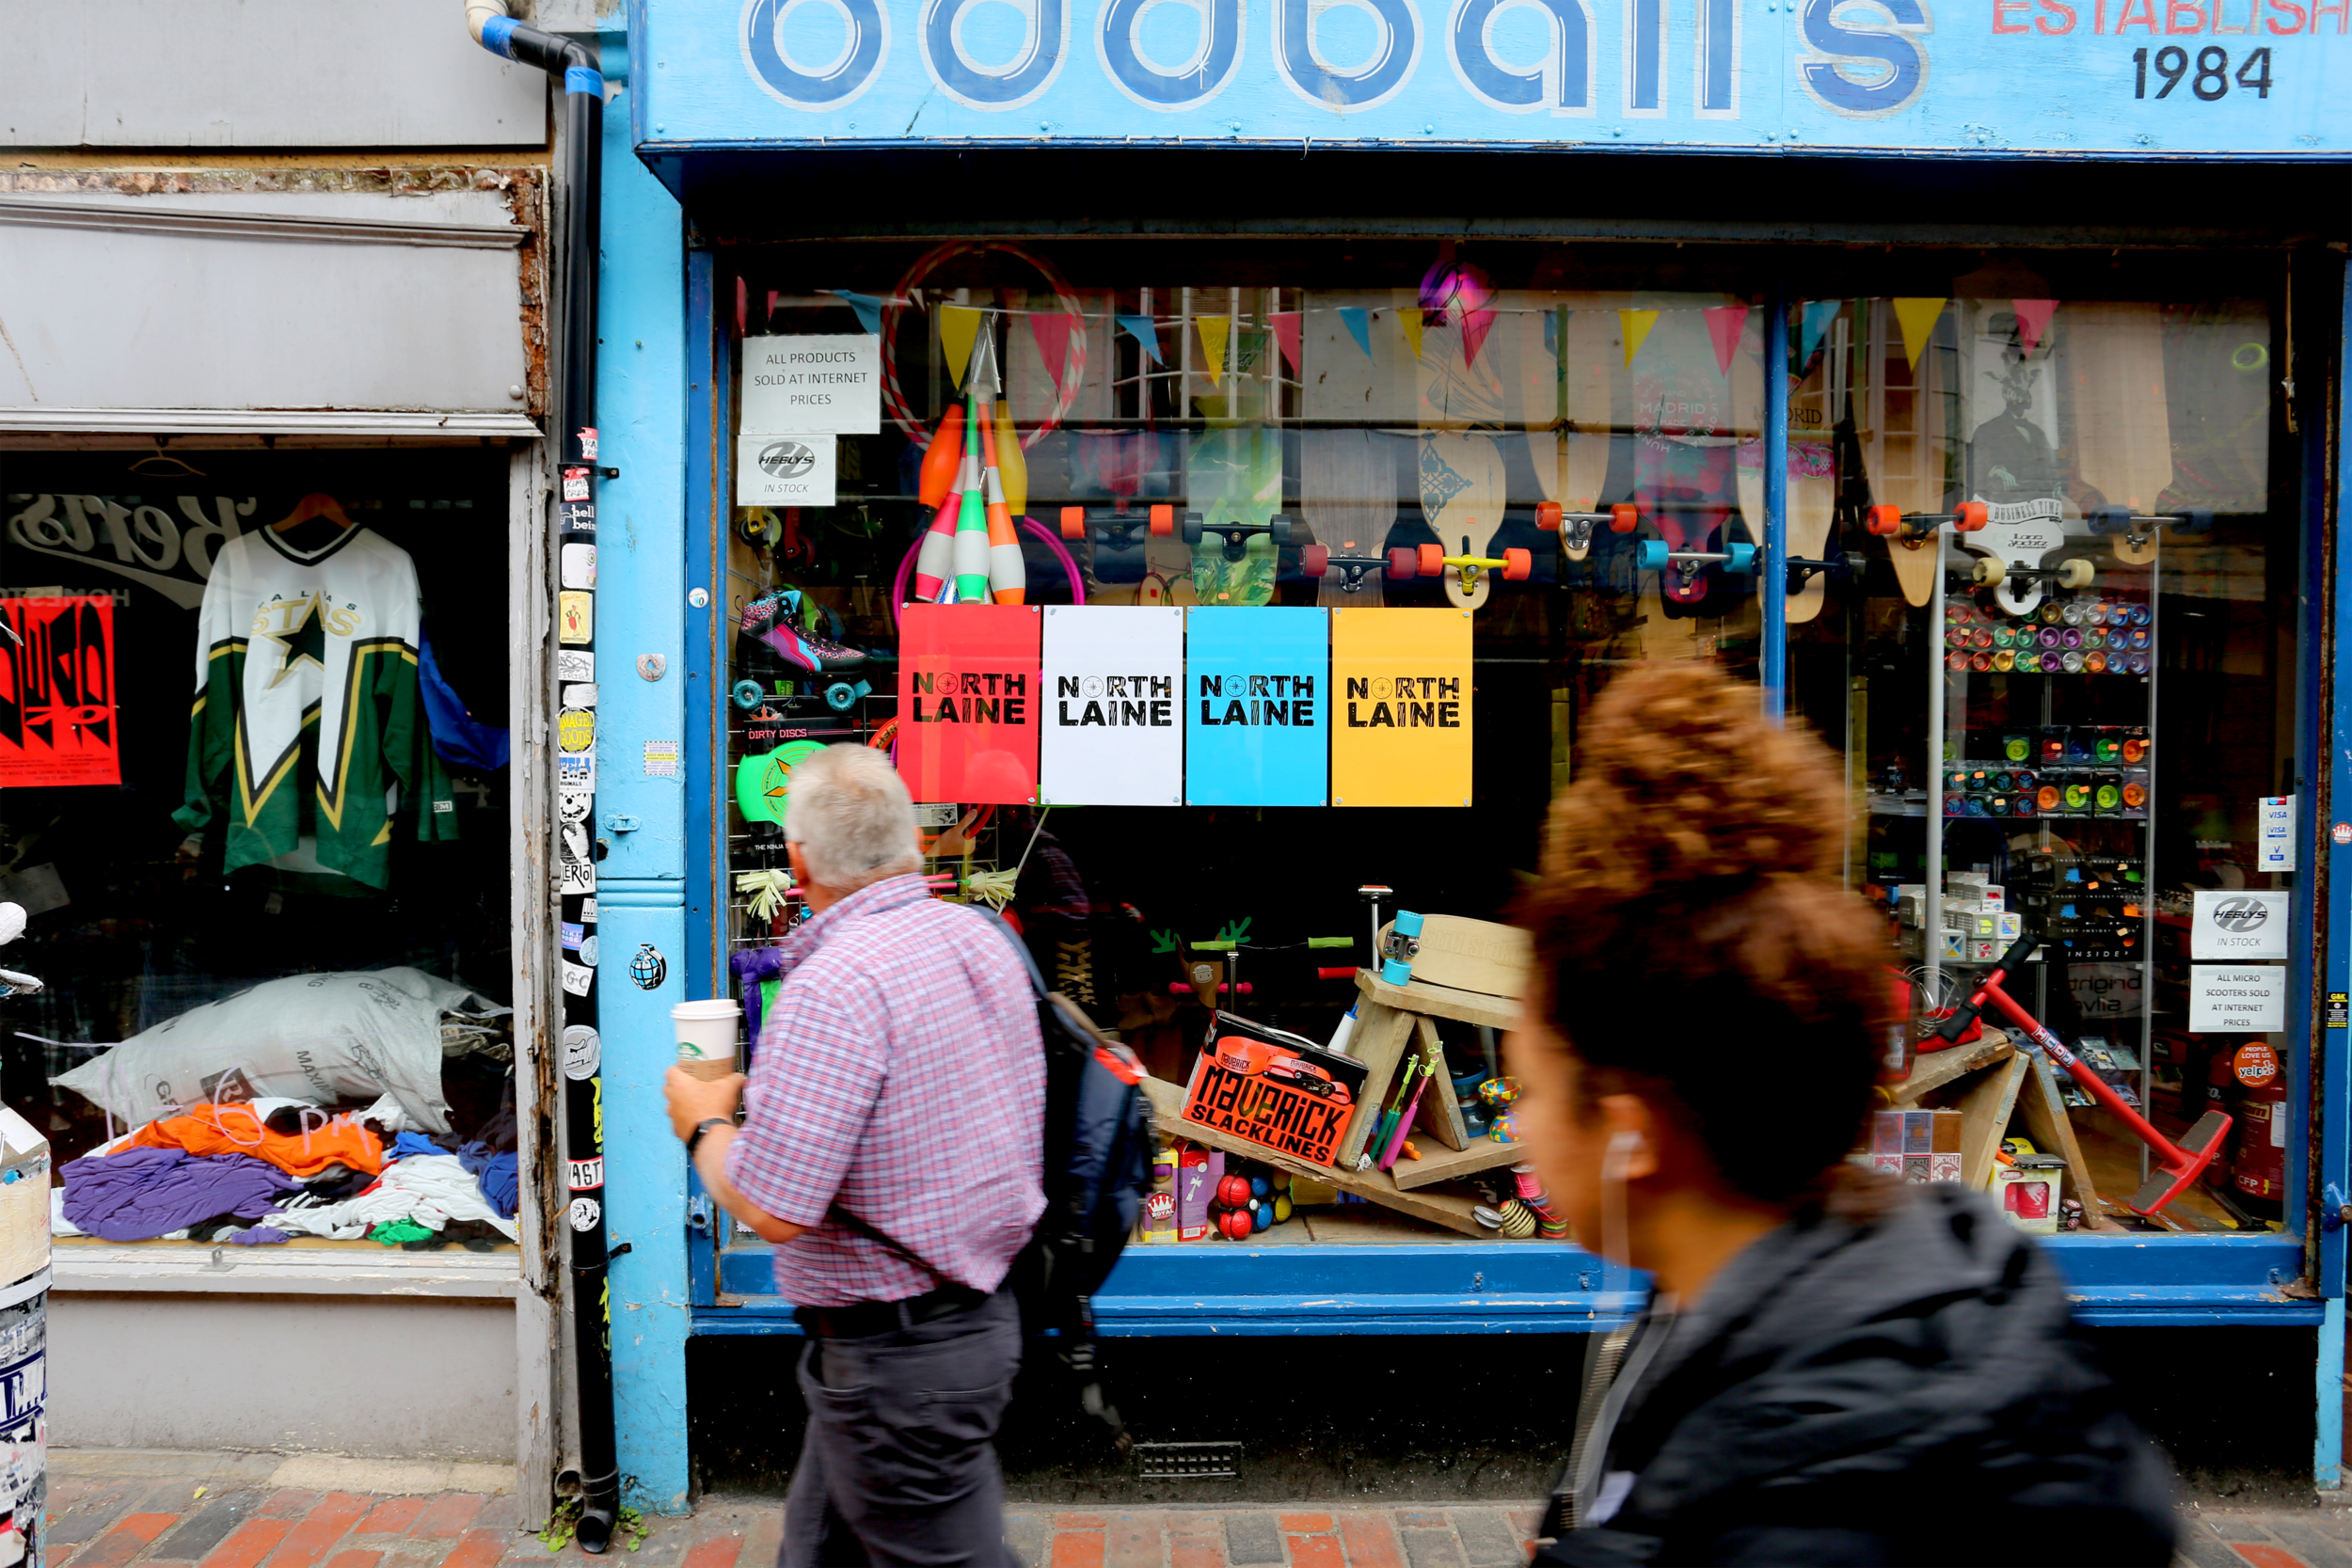 North Laine - North Laine branding and identity project to give the area a unique sense of individuality within Brighton's historical shopping area.